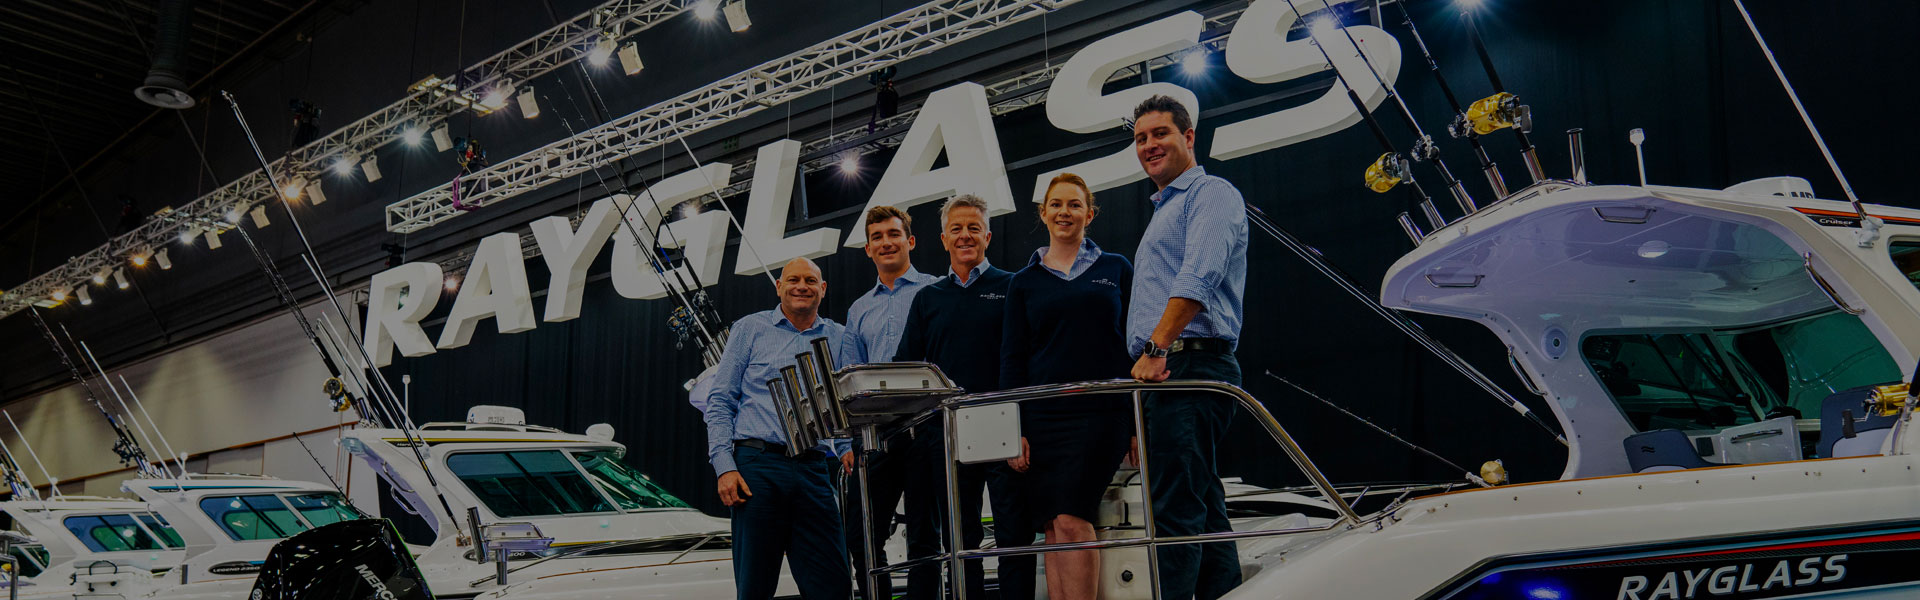 Meet All Of Our Highly Qualified Team At Rayglass Boats